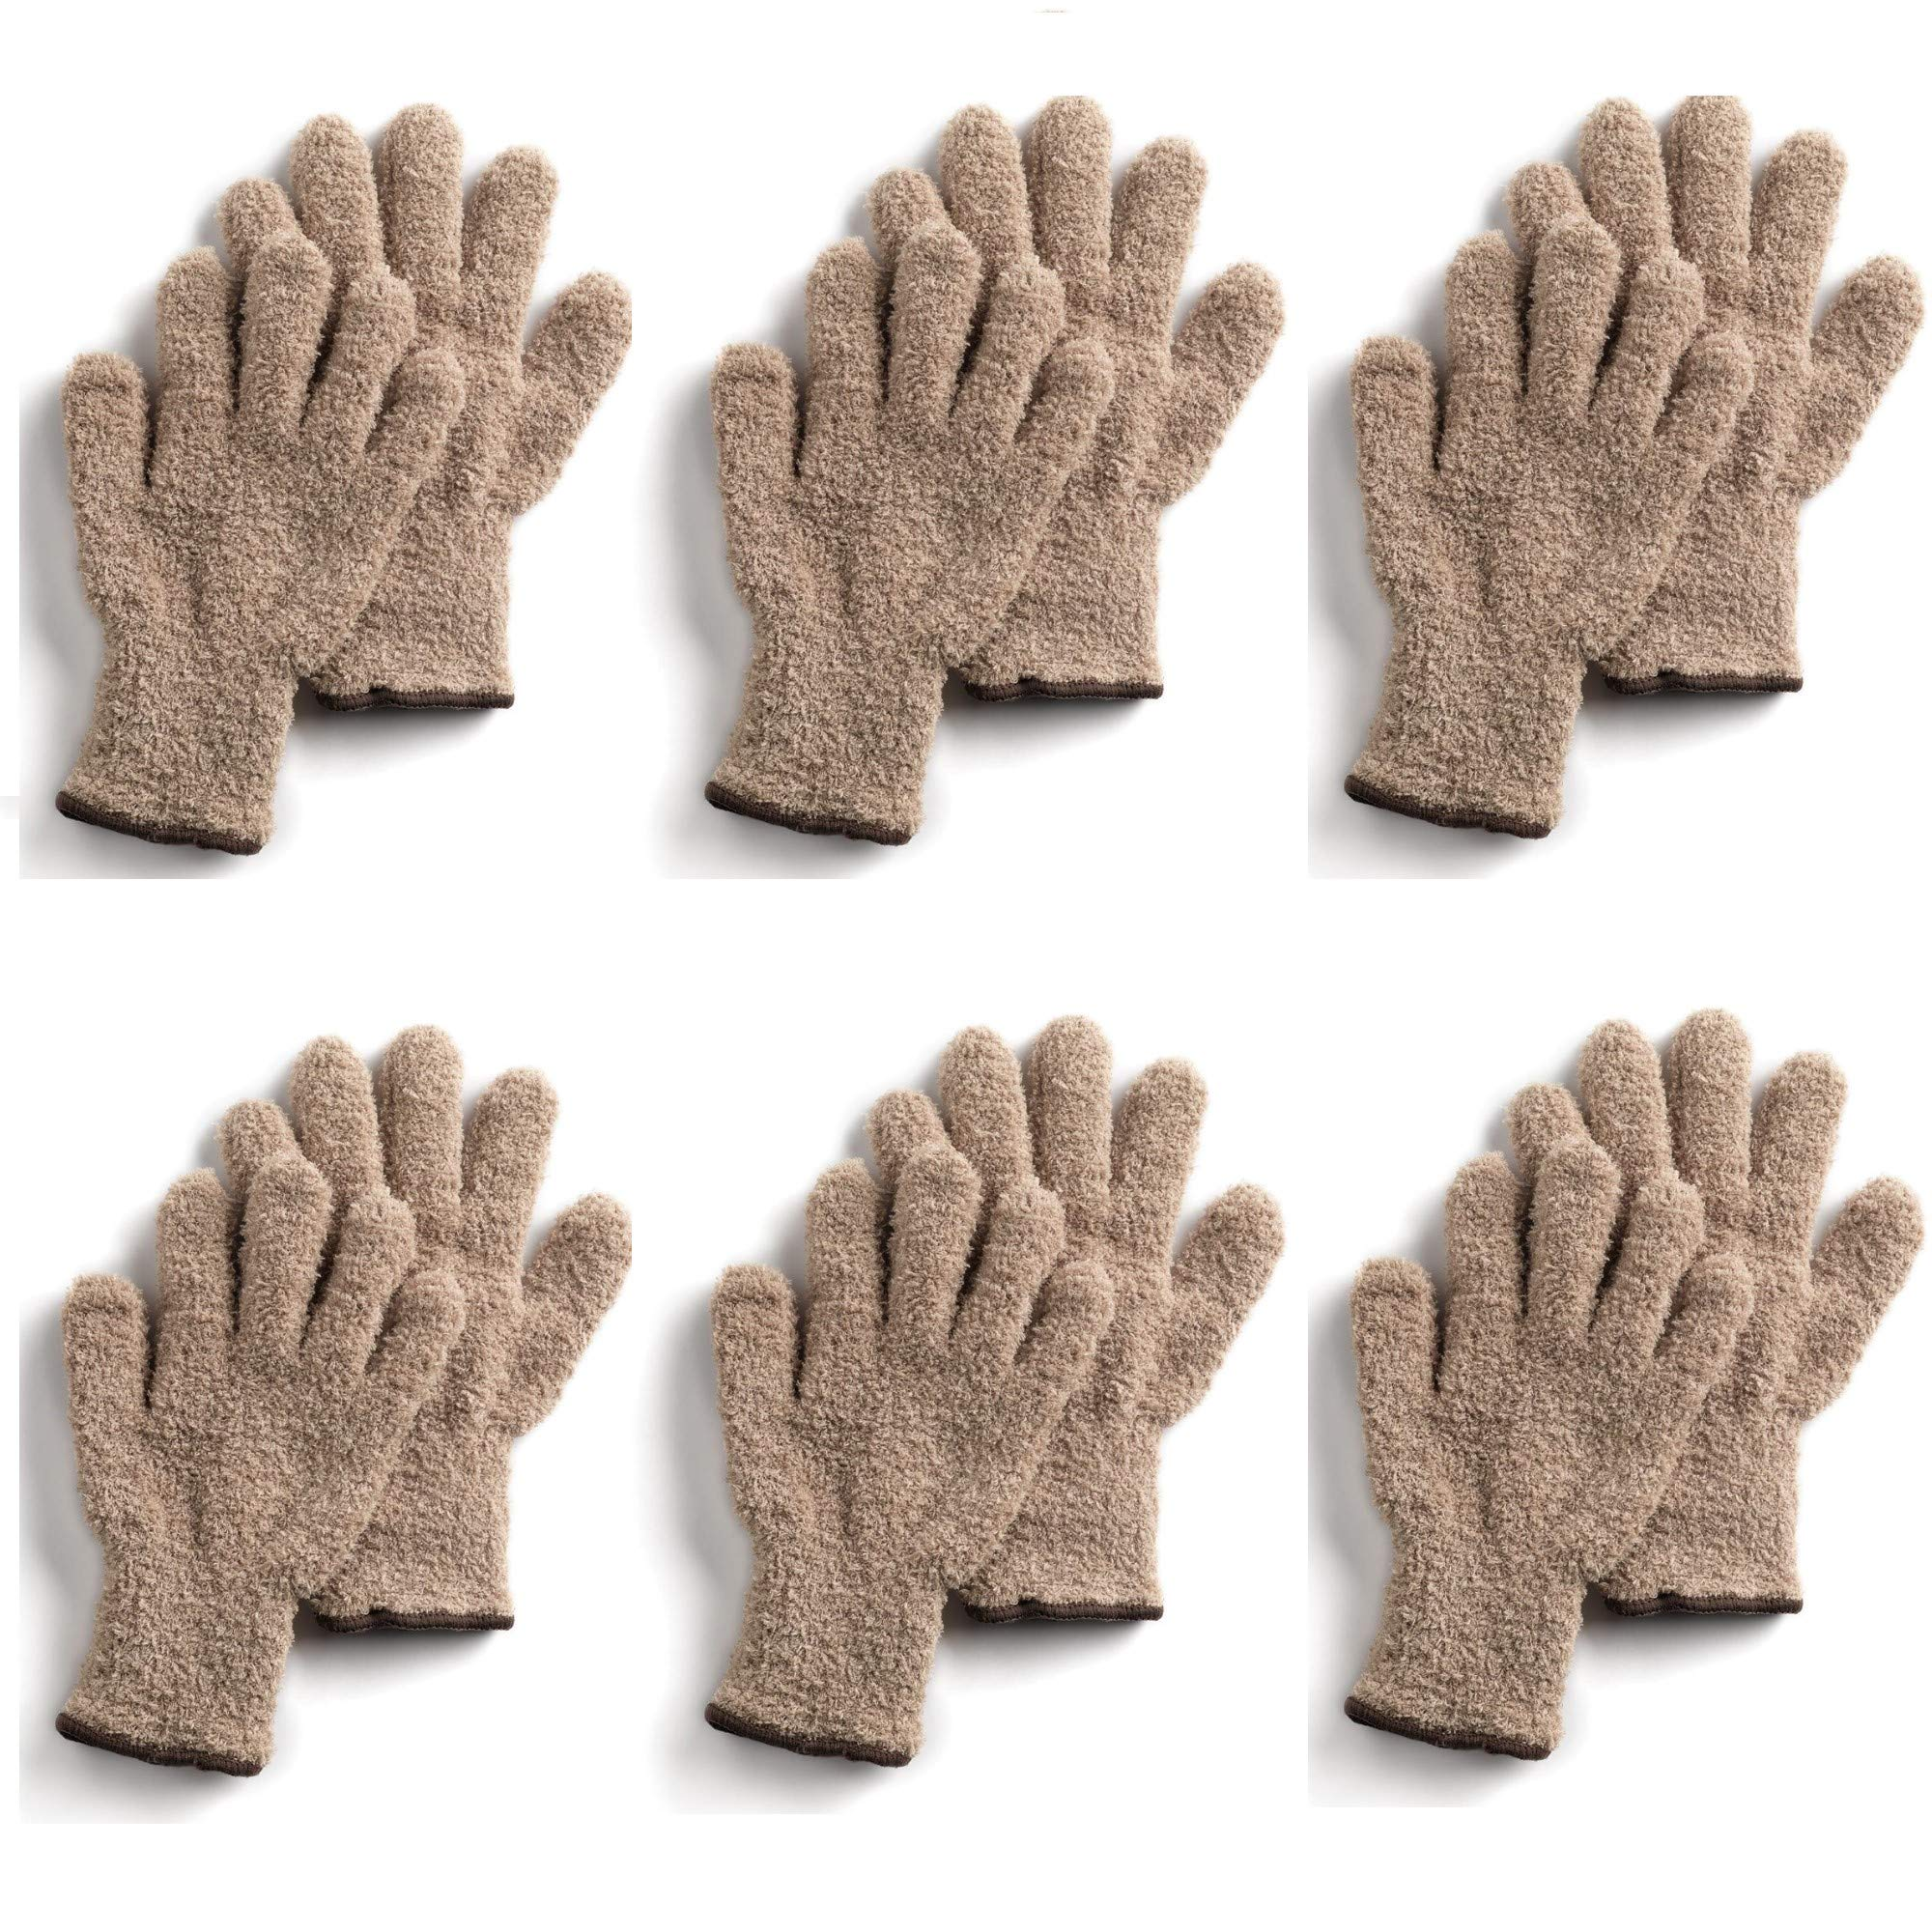 CleanGreen Microfiber Cleaning and Dusting Gloves (6 Pack) by Master Caster